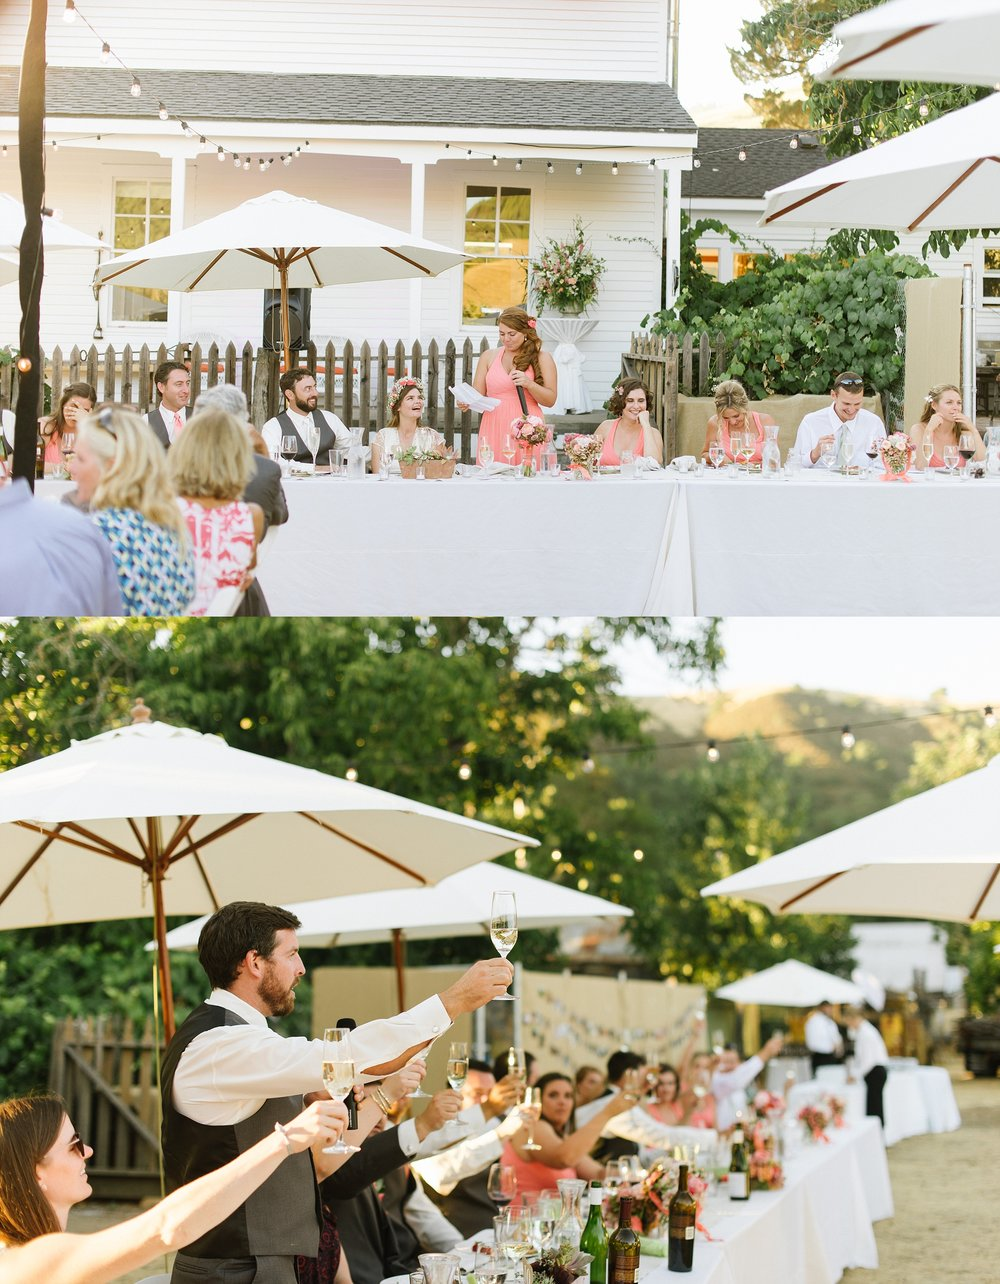 fairfax_ranch_wedding_chelsea_dier_photography_0038.jpg